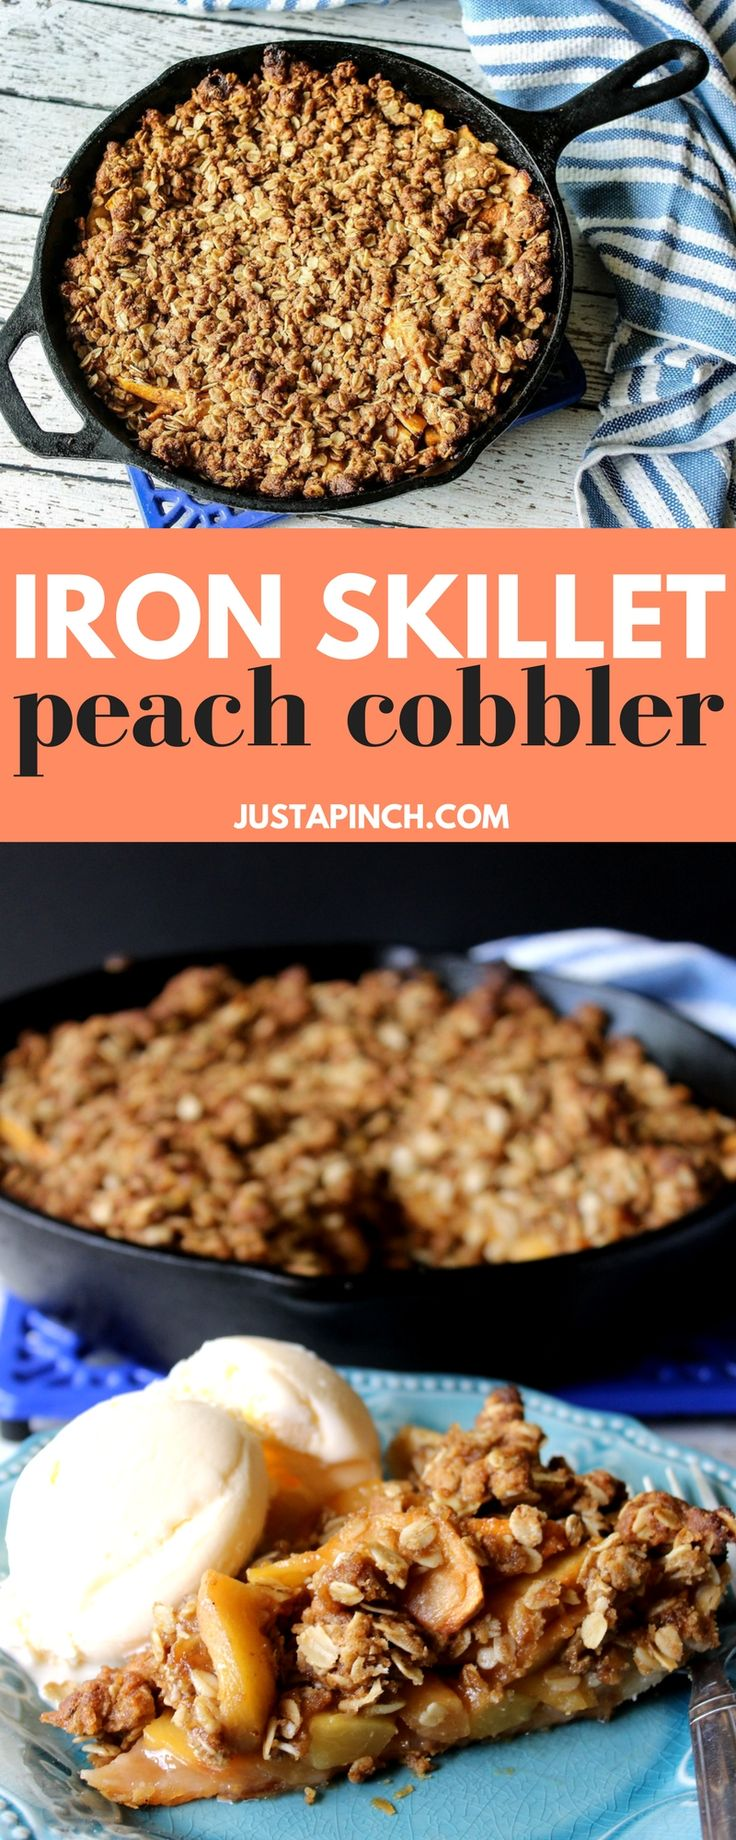 We loved this simple peach cobbler. Cooking in a cast iron skillet cooks the crust perfectly. The fresh peaches have just enough sugar to let their natural flavors shine. An oatmeal topping adds a nice crunch and sweetness. It's a quick and simple way to make a cobbler. Delish!